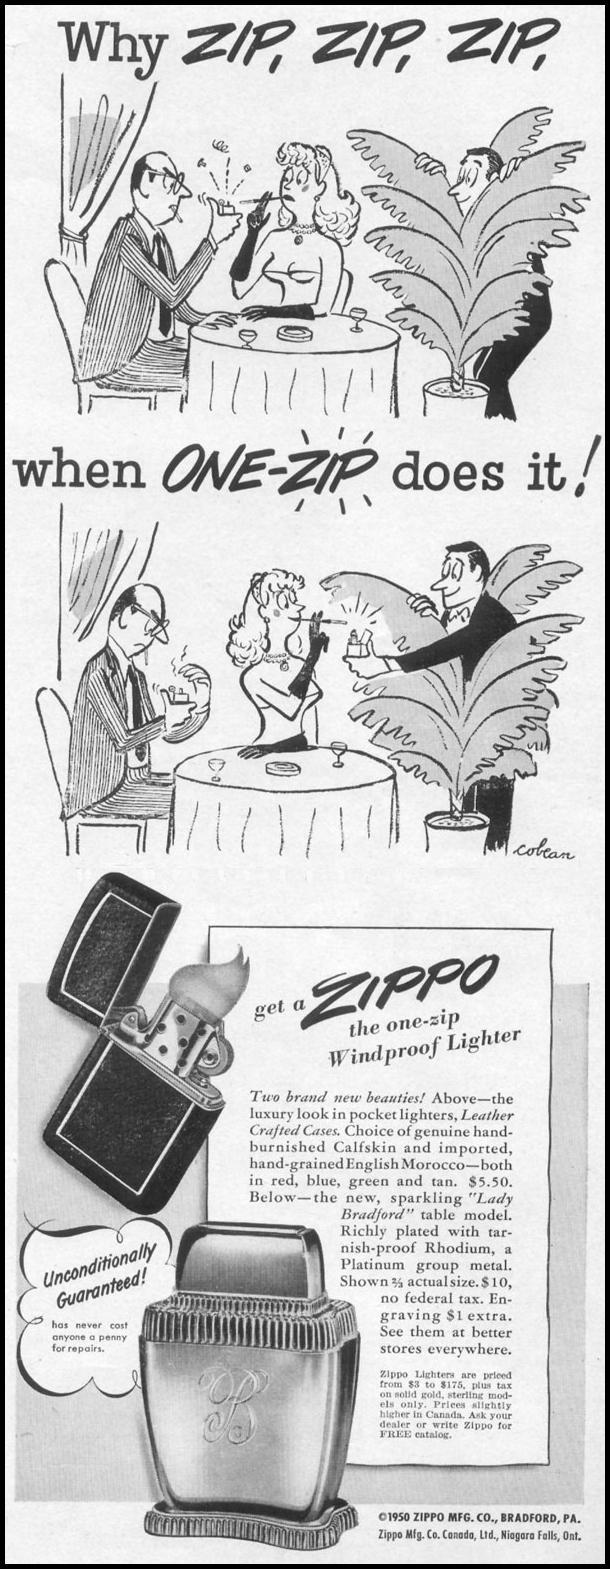 ZIPPO WINDPROOF LIGHTERS LIFE 06/05/1950 p. 85